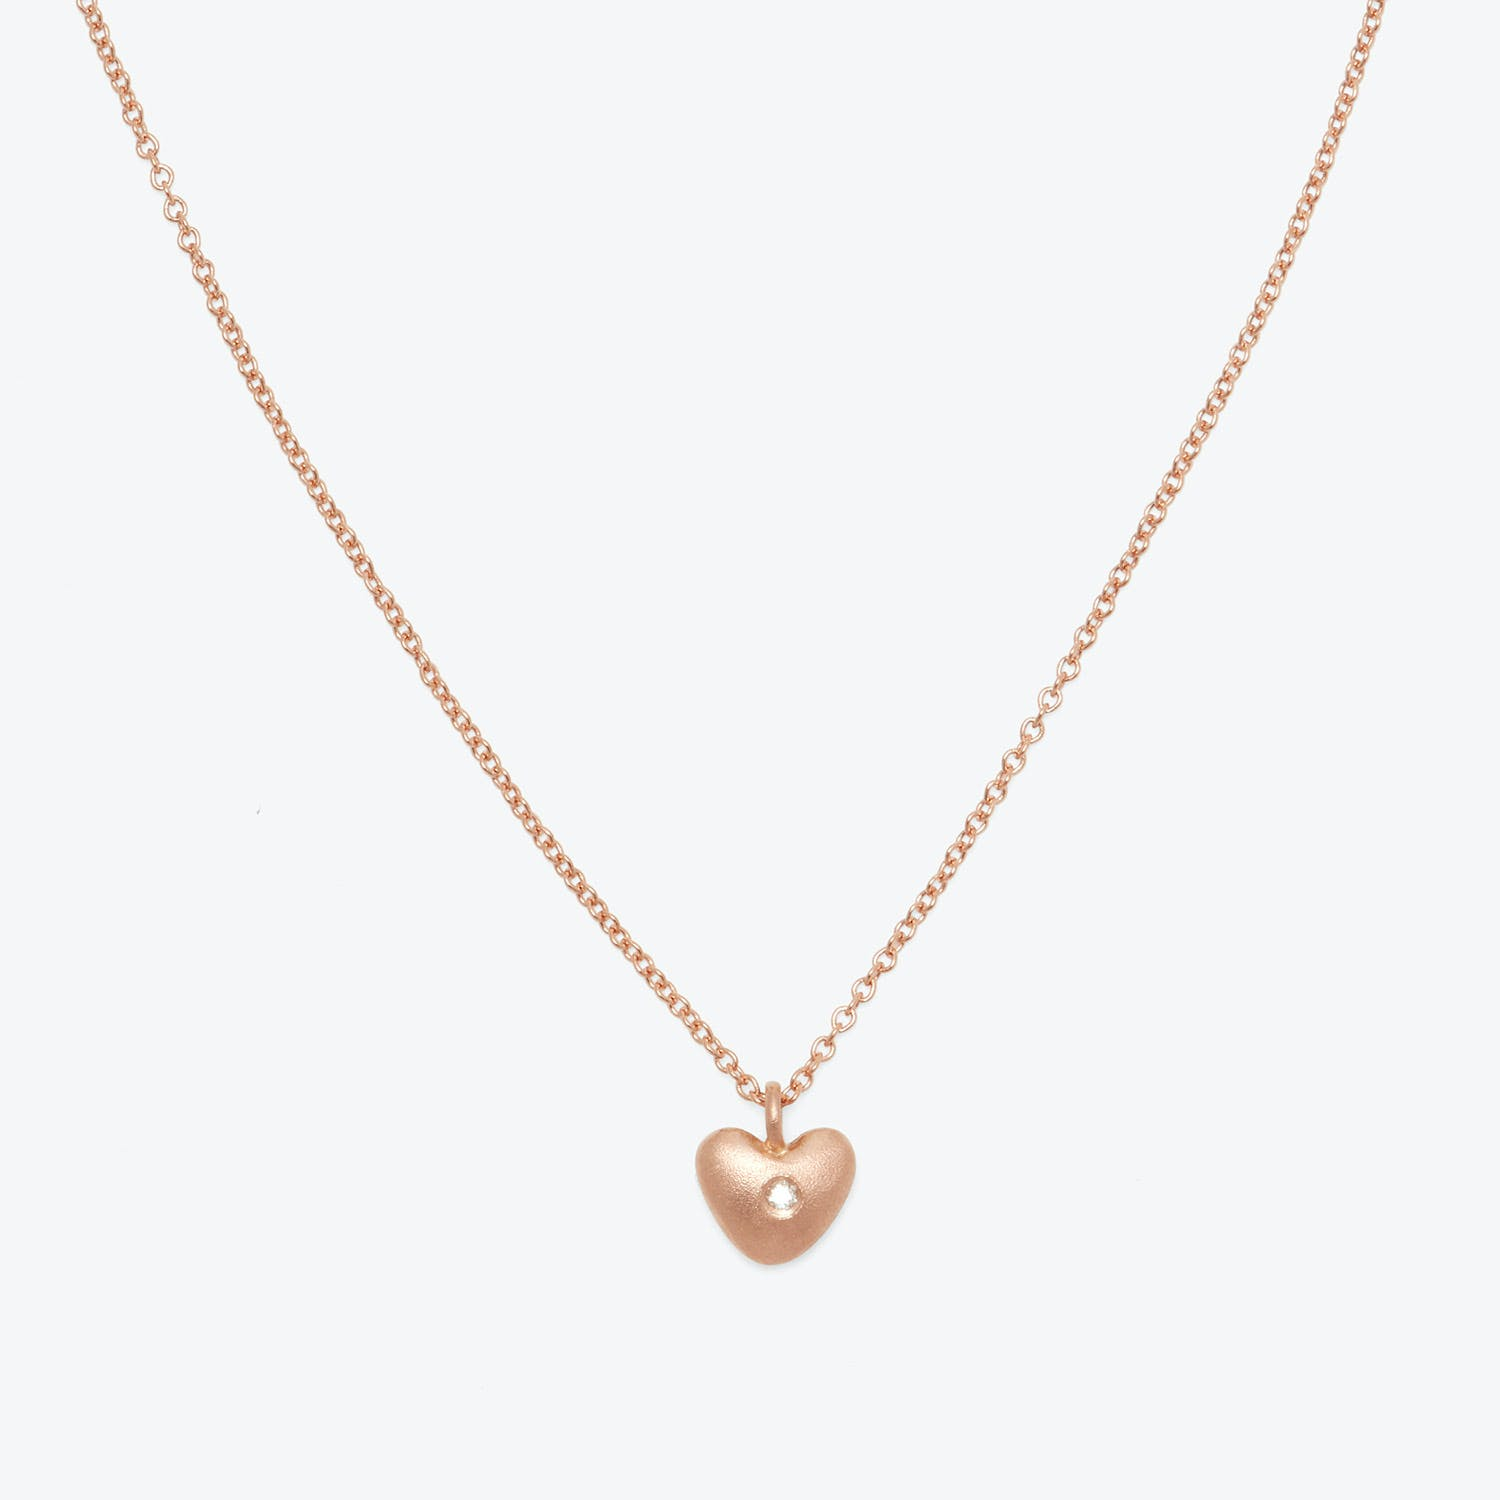 Aili Jewelry Brushed Rose Gold Heart Necklace